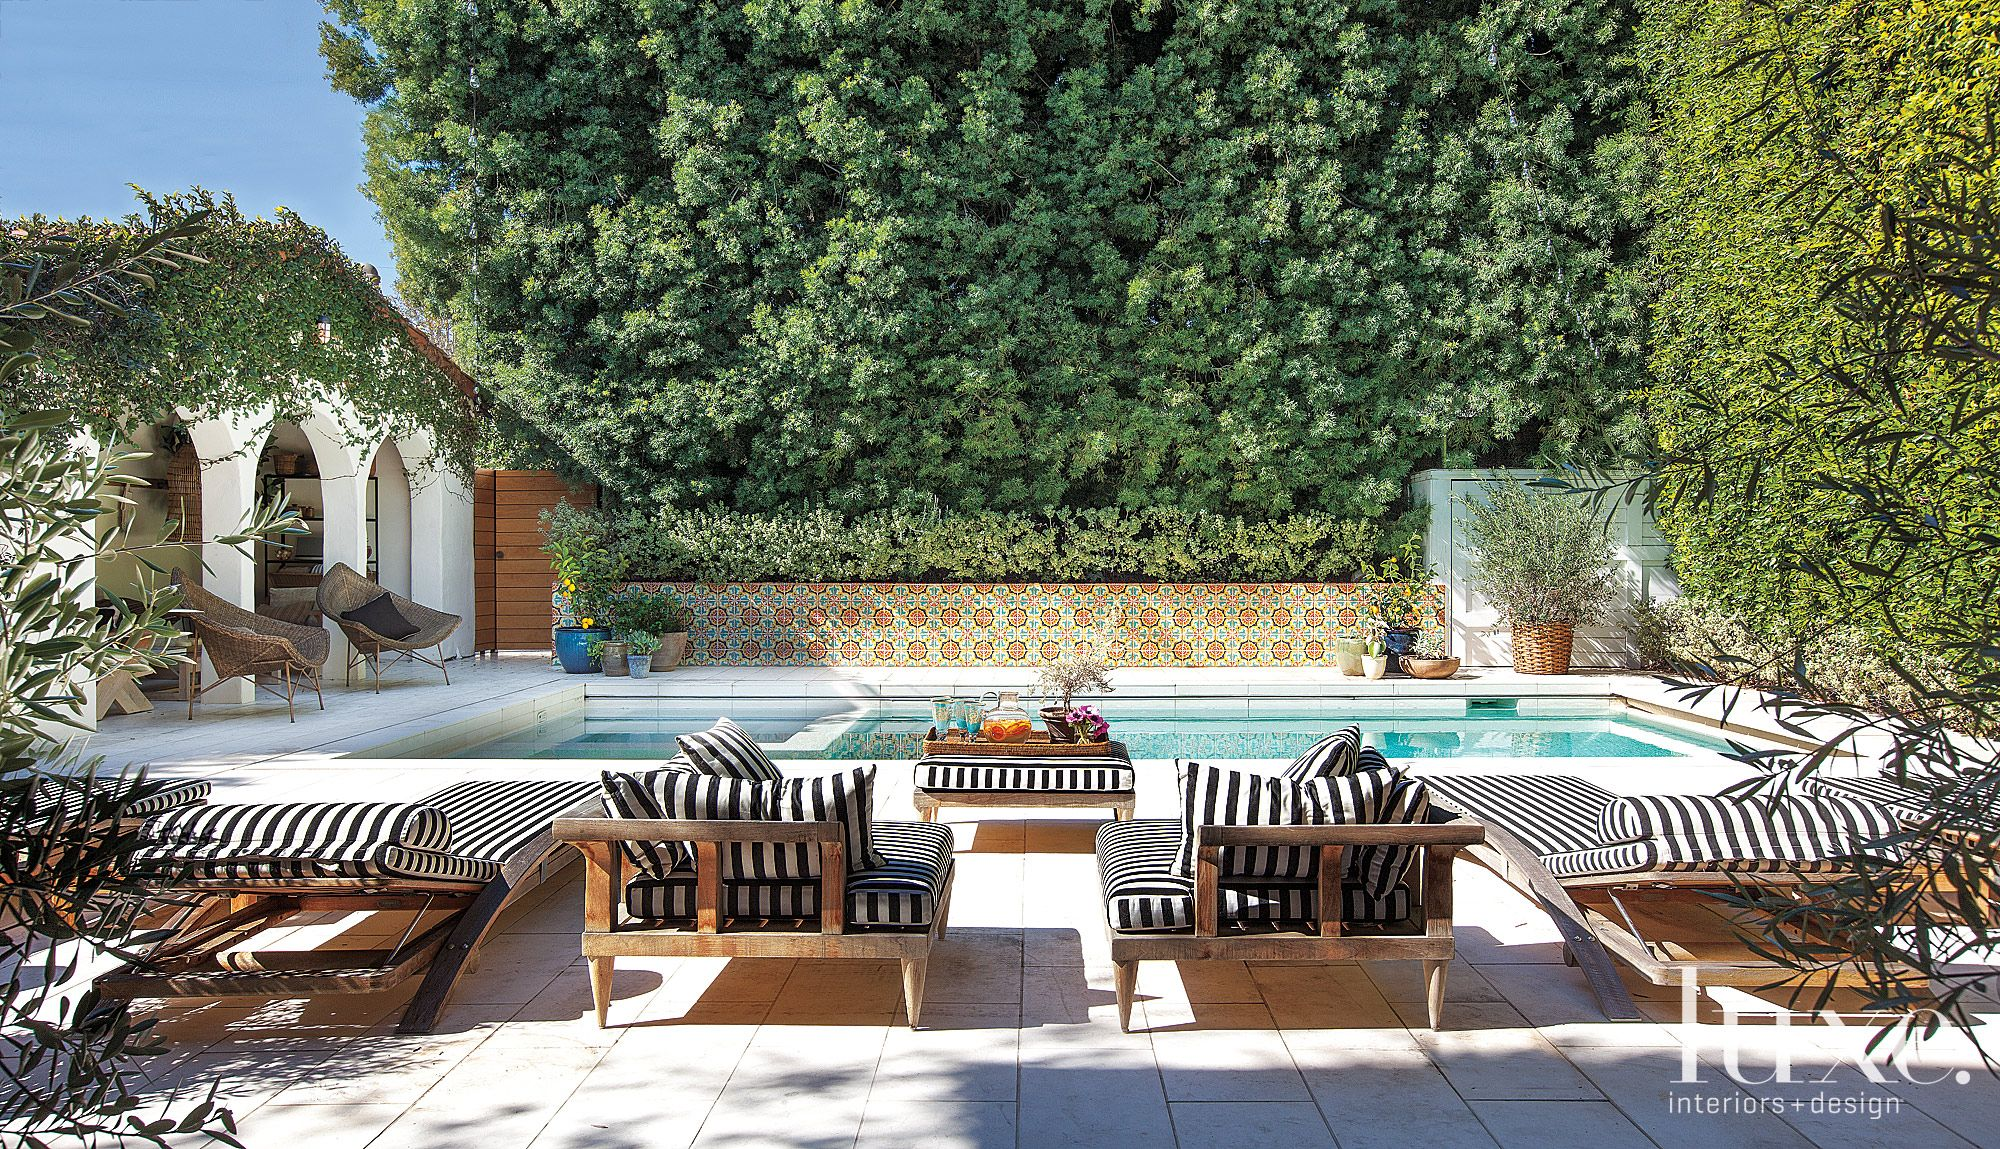 Mediterranean Poolside Terrace with Tile Wall